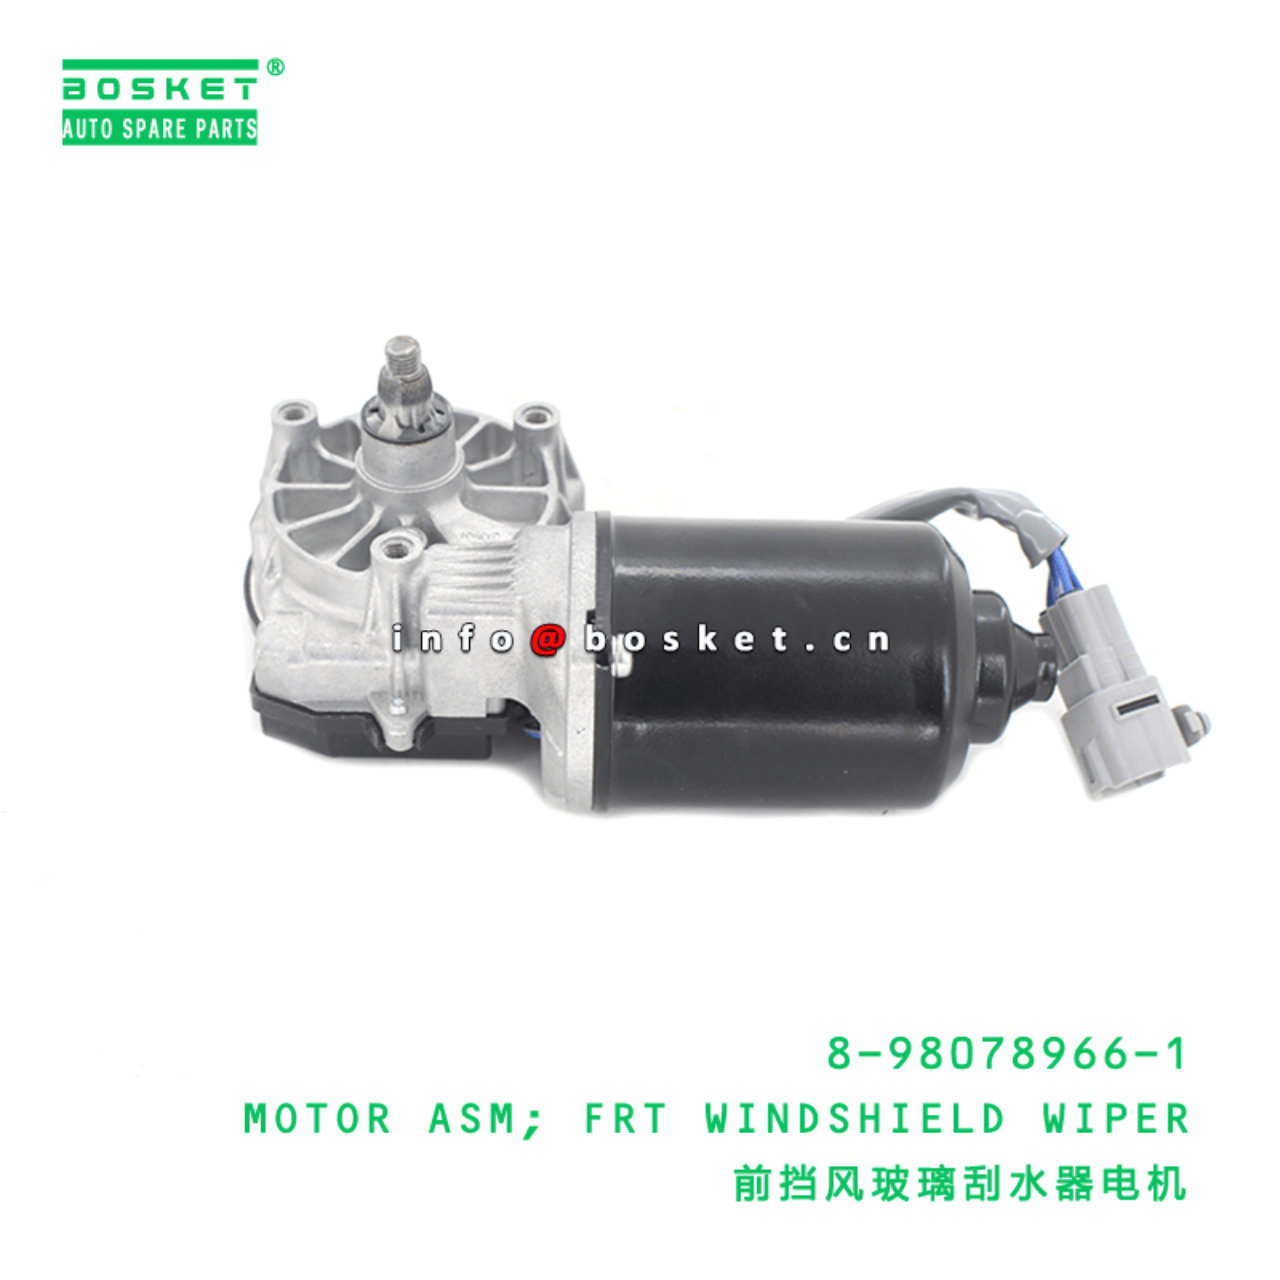 8-98078966-1 Front Windshield Wiper Motor Assembl...